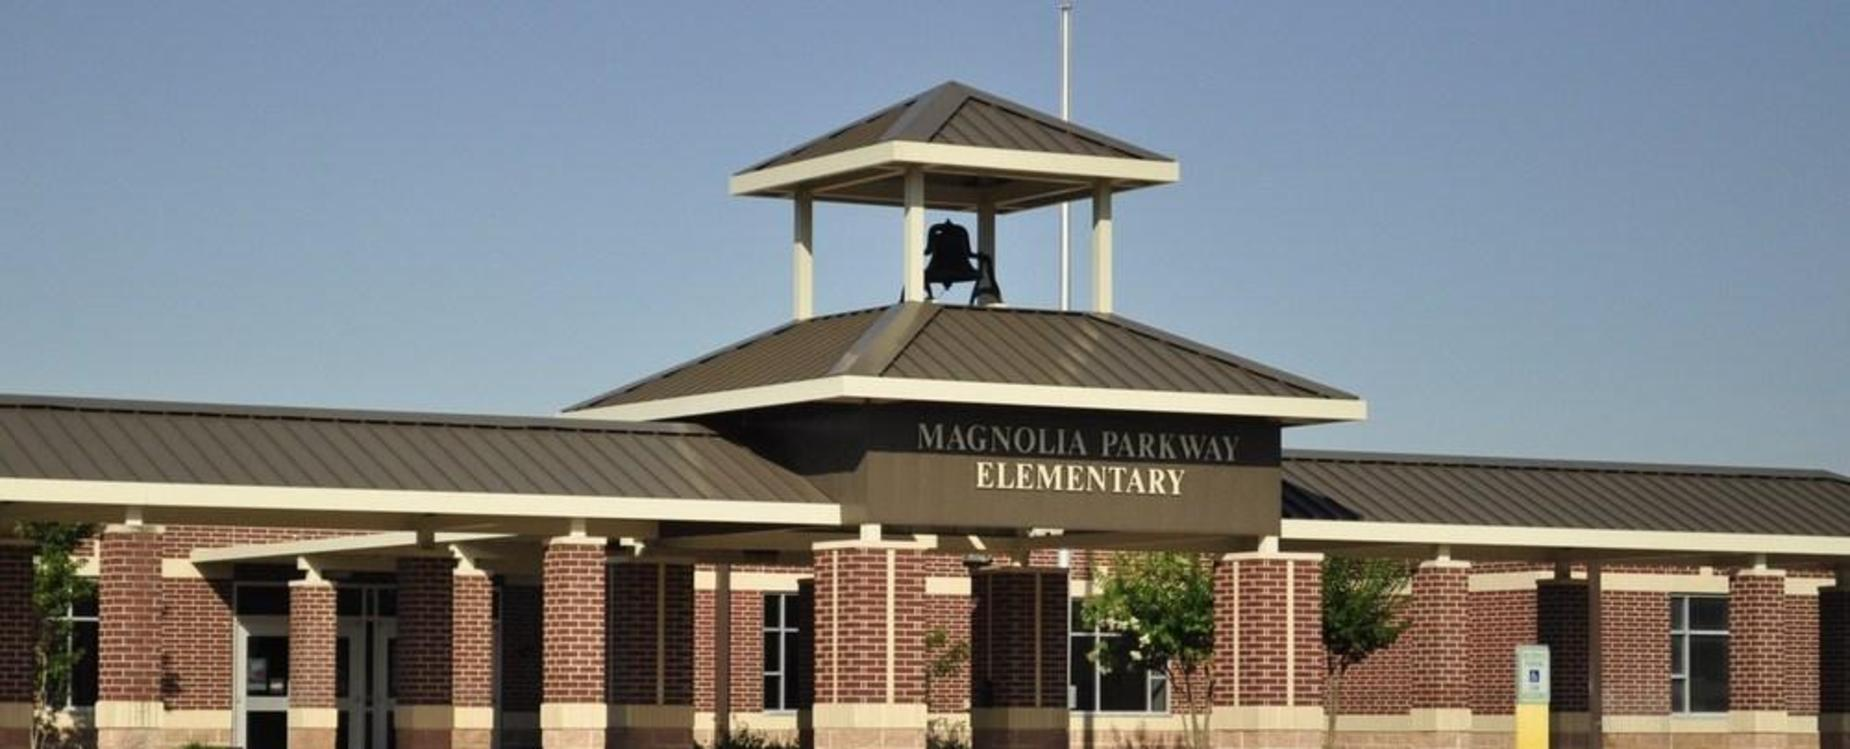 Picture of Magnolia Parkway Elementary School